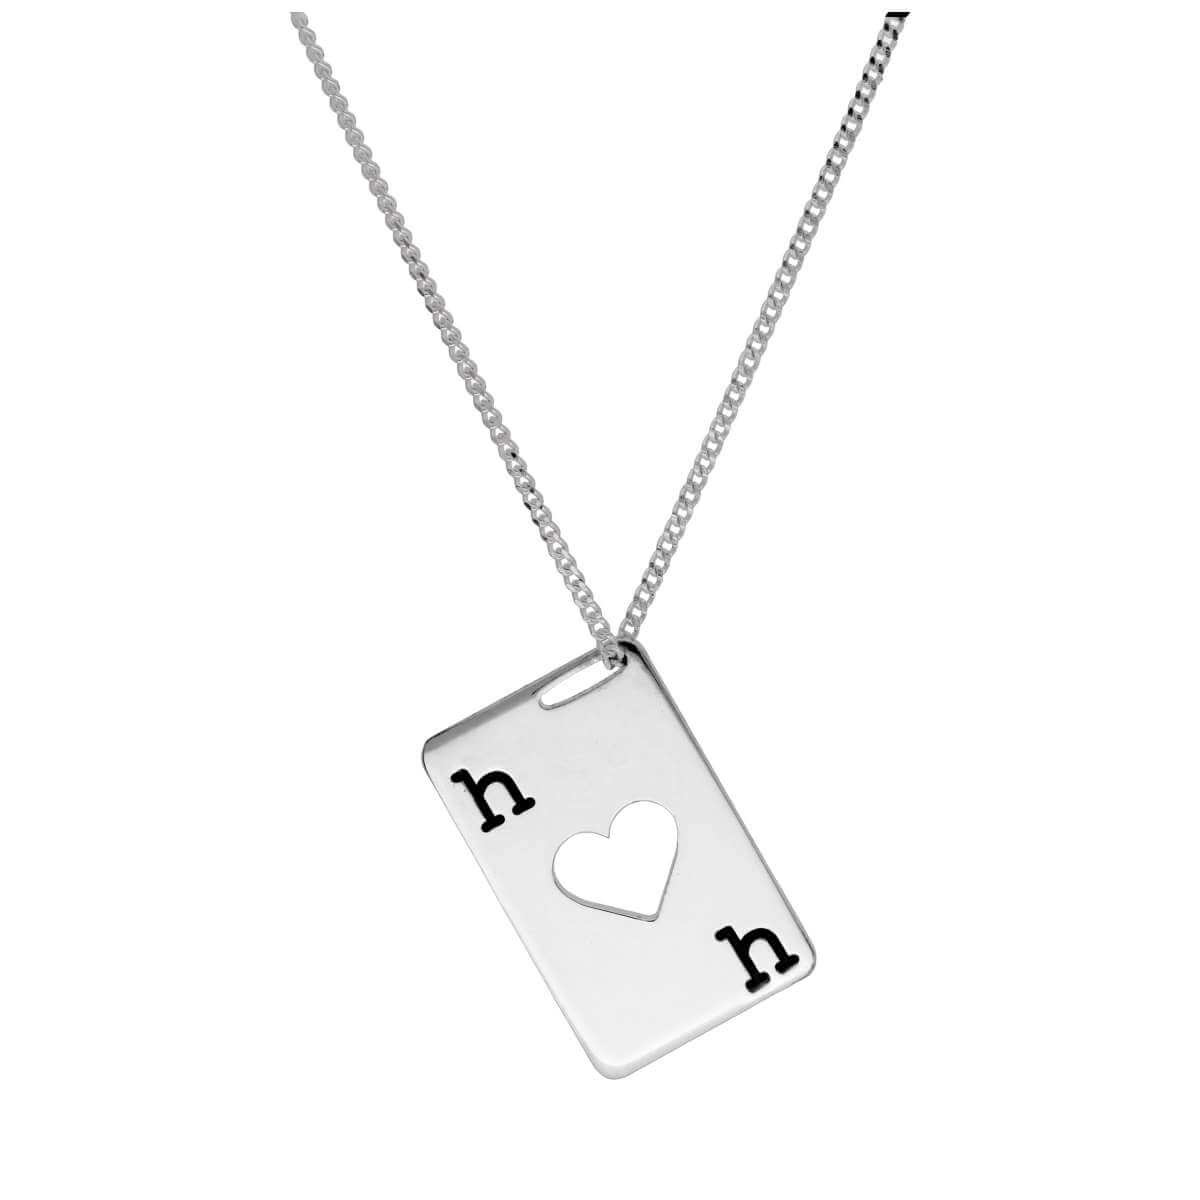 Bespoke Sterling Silver Hearts Playing Card Necklace 14-32 Inches